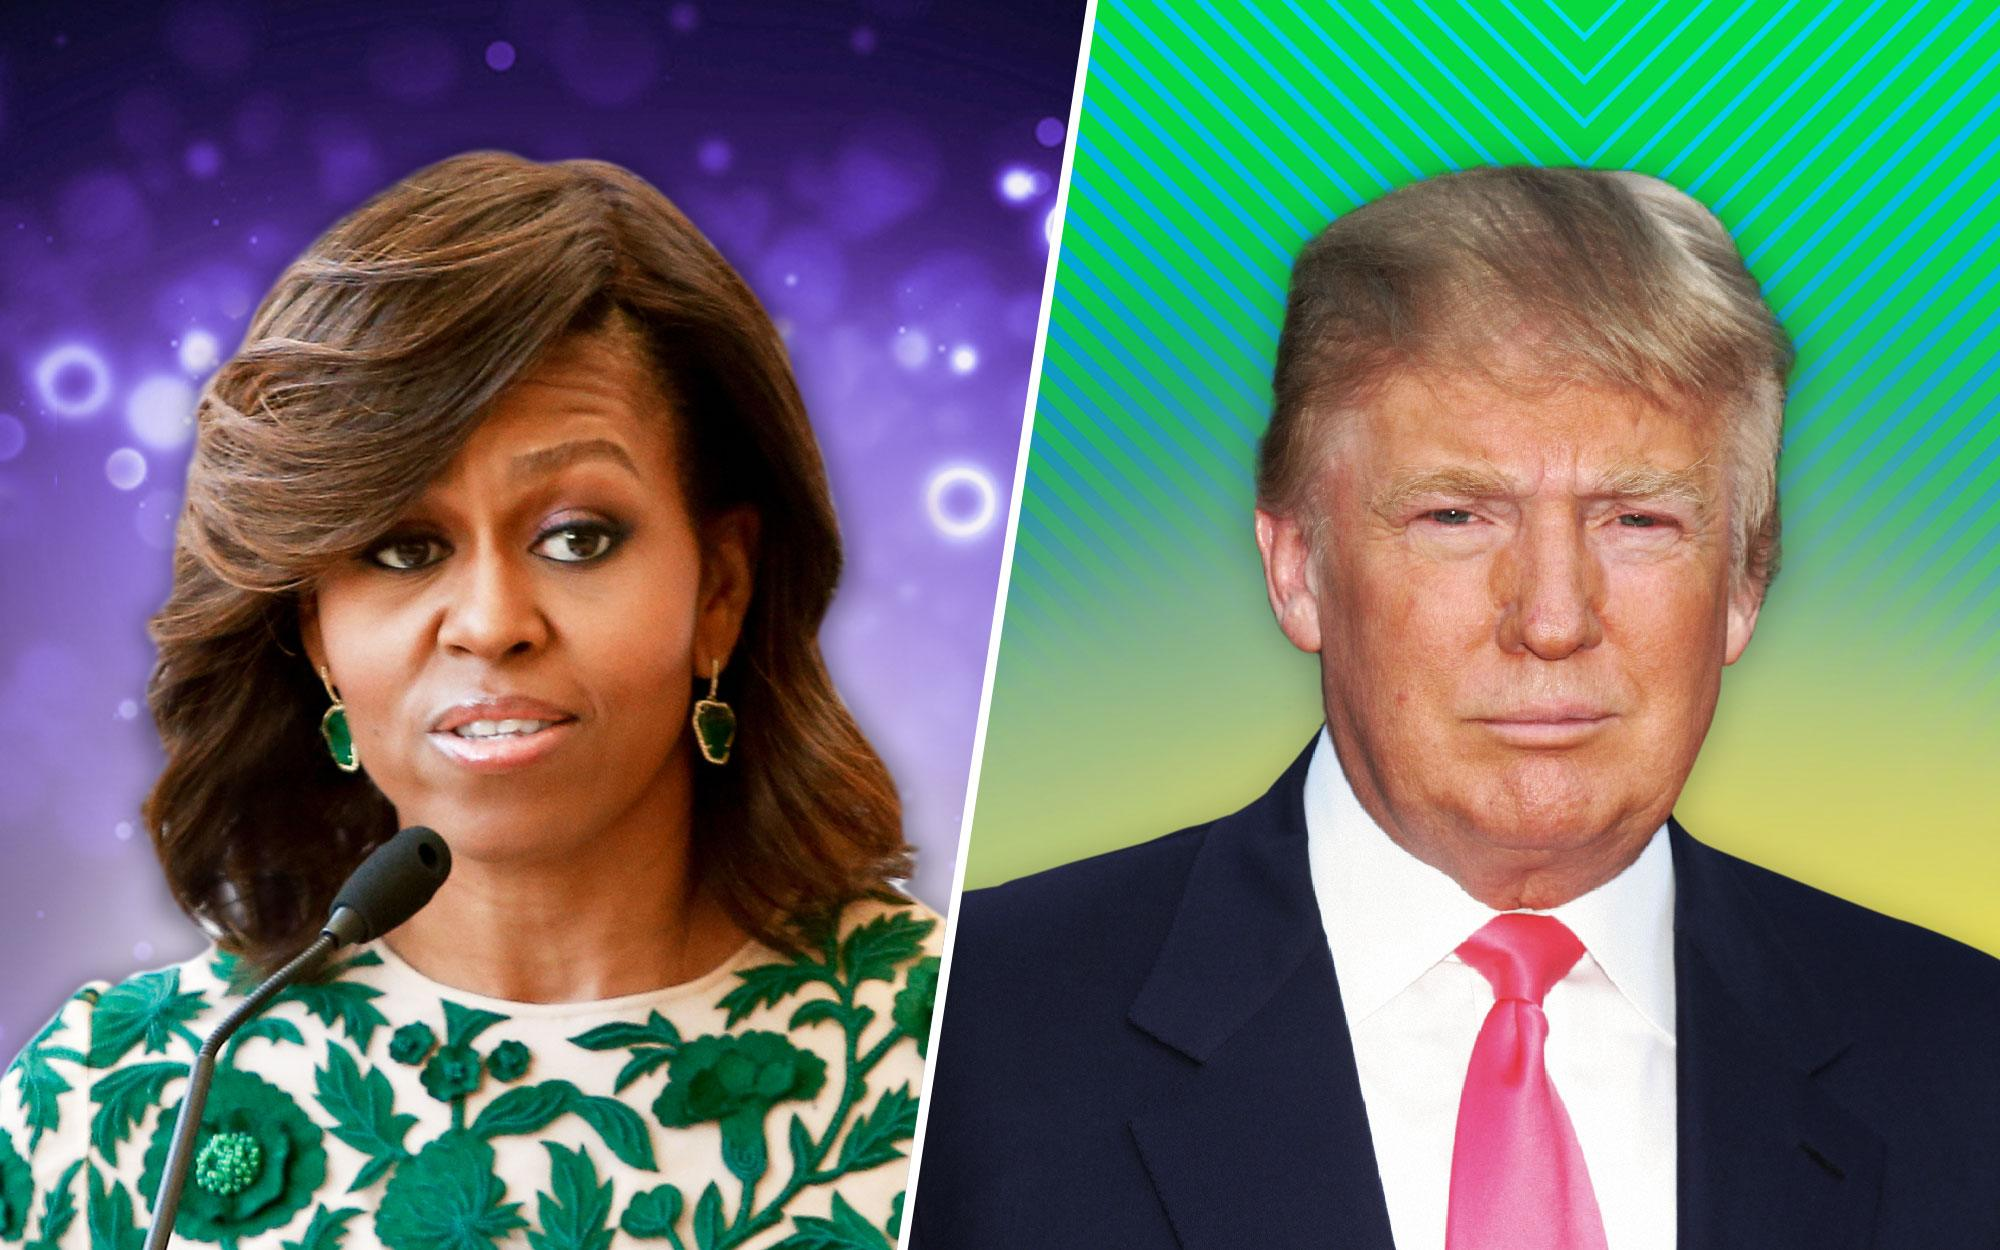 Michelle Obama May Have Taken a Pot Shot at President Donald Trump